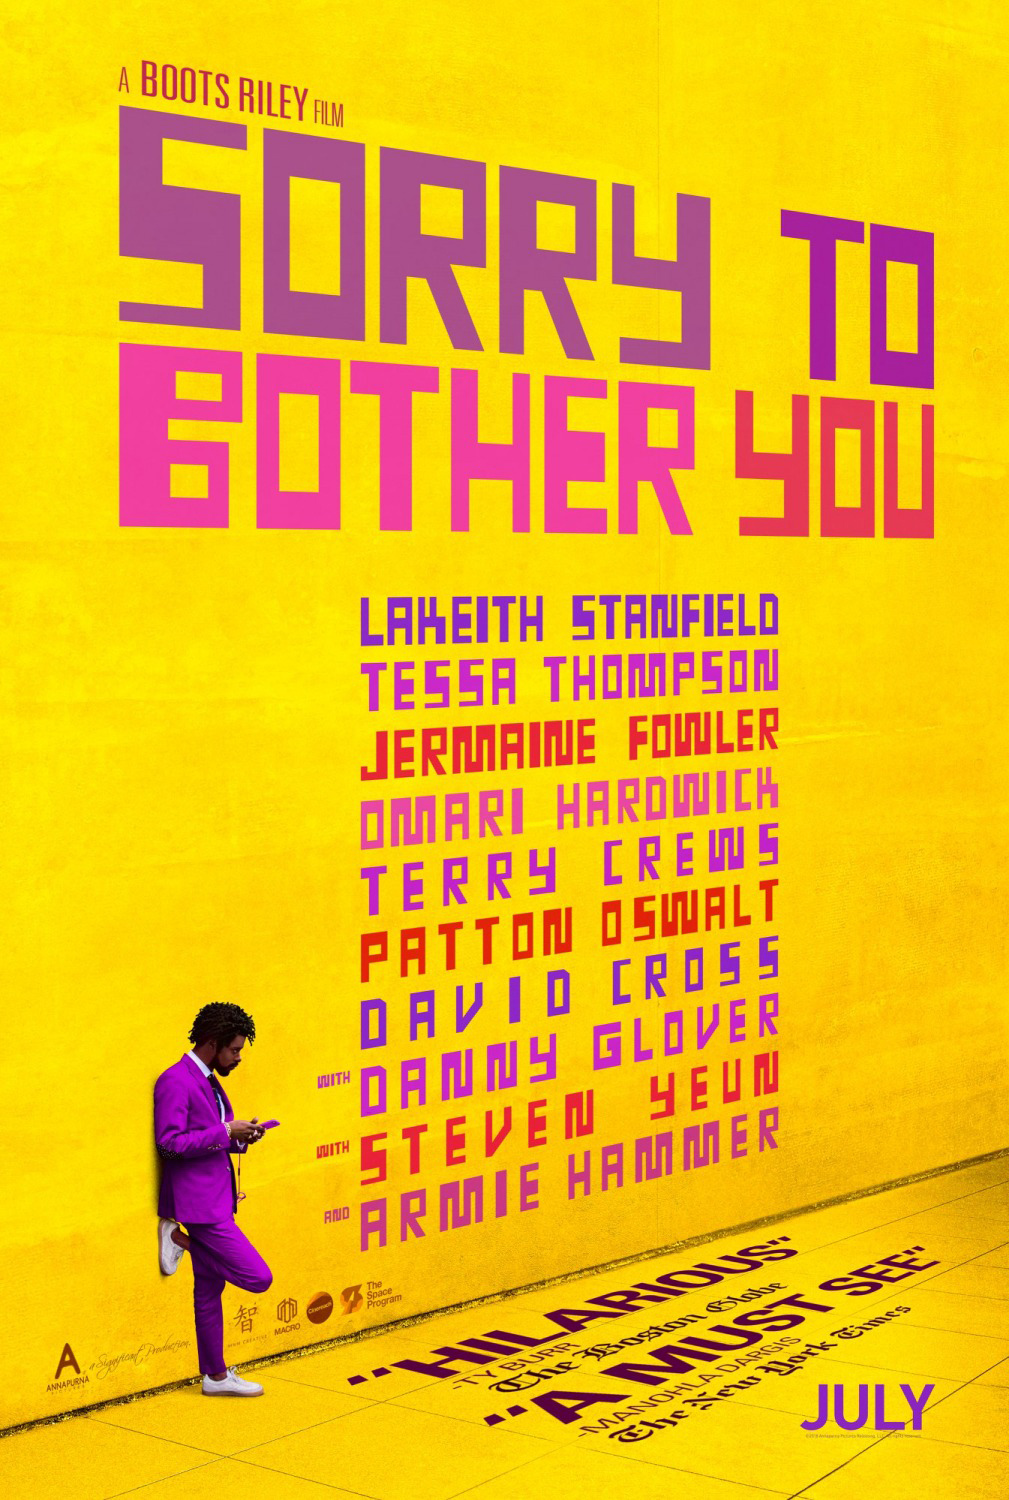 Othersode #17: Murder Murder Murder, Kill Kill Kill / Sorry to Bother You - Hi, um, sorry to bother you, this is the #BookSquad, and we just want to talk to you about this movie we saw. Listen as we discuss Boots Riley's directorial debut, Sorry to Bother You, starring LaKeith Stanfield and Tessa Thompson. We talk about